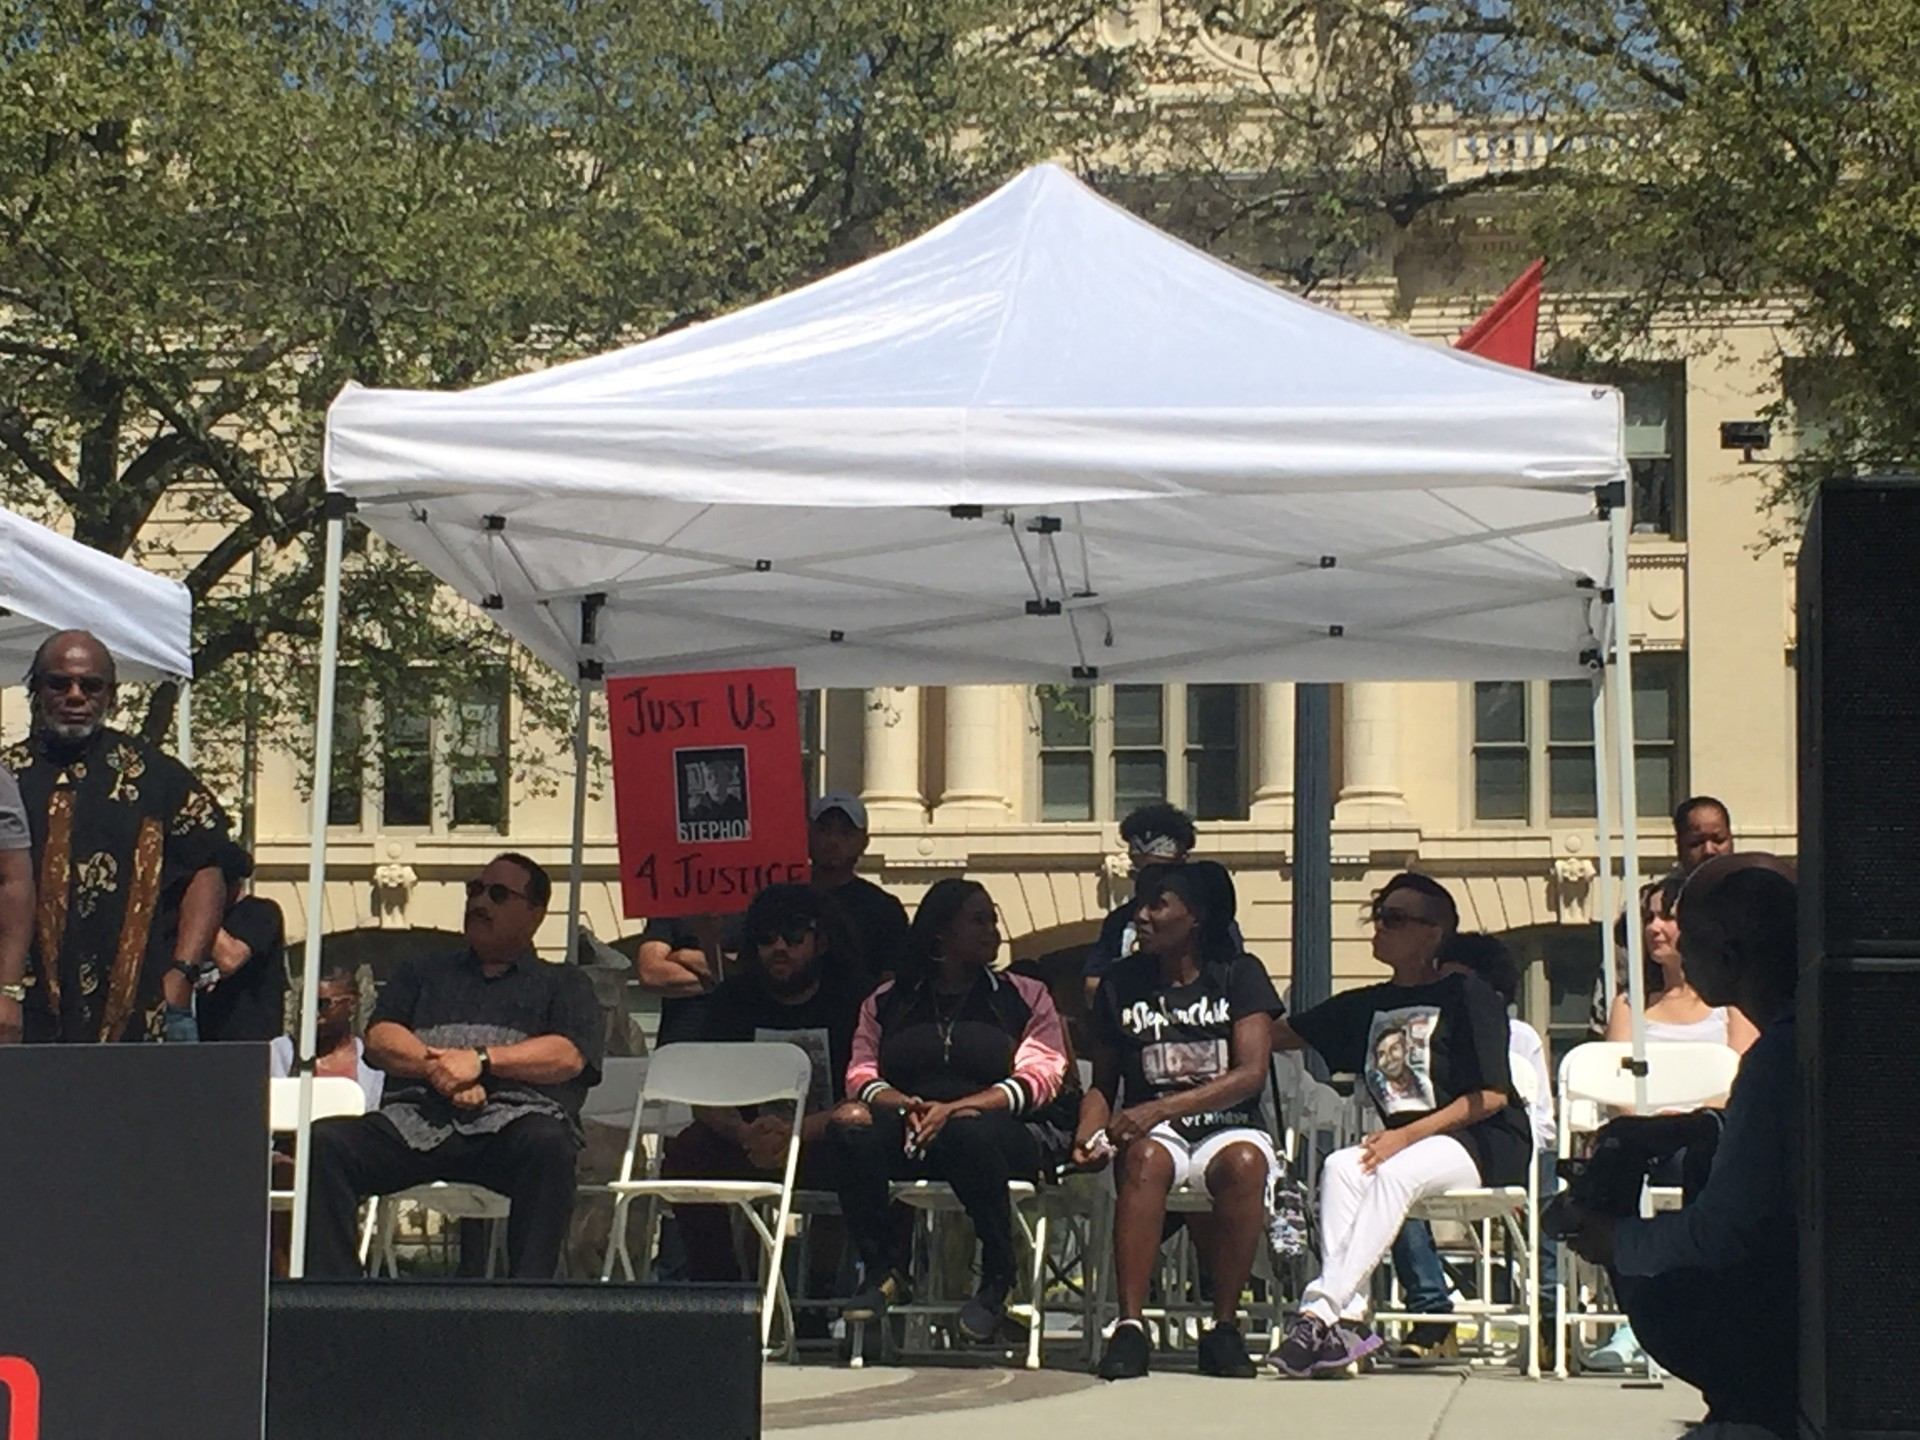 Former Sacramento Kings player Matt Barnes held a rally in downtown Sacramento for Stephon Clark on Saturday, March 31, 2018.